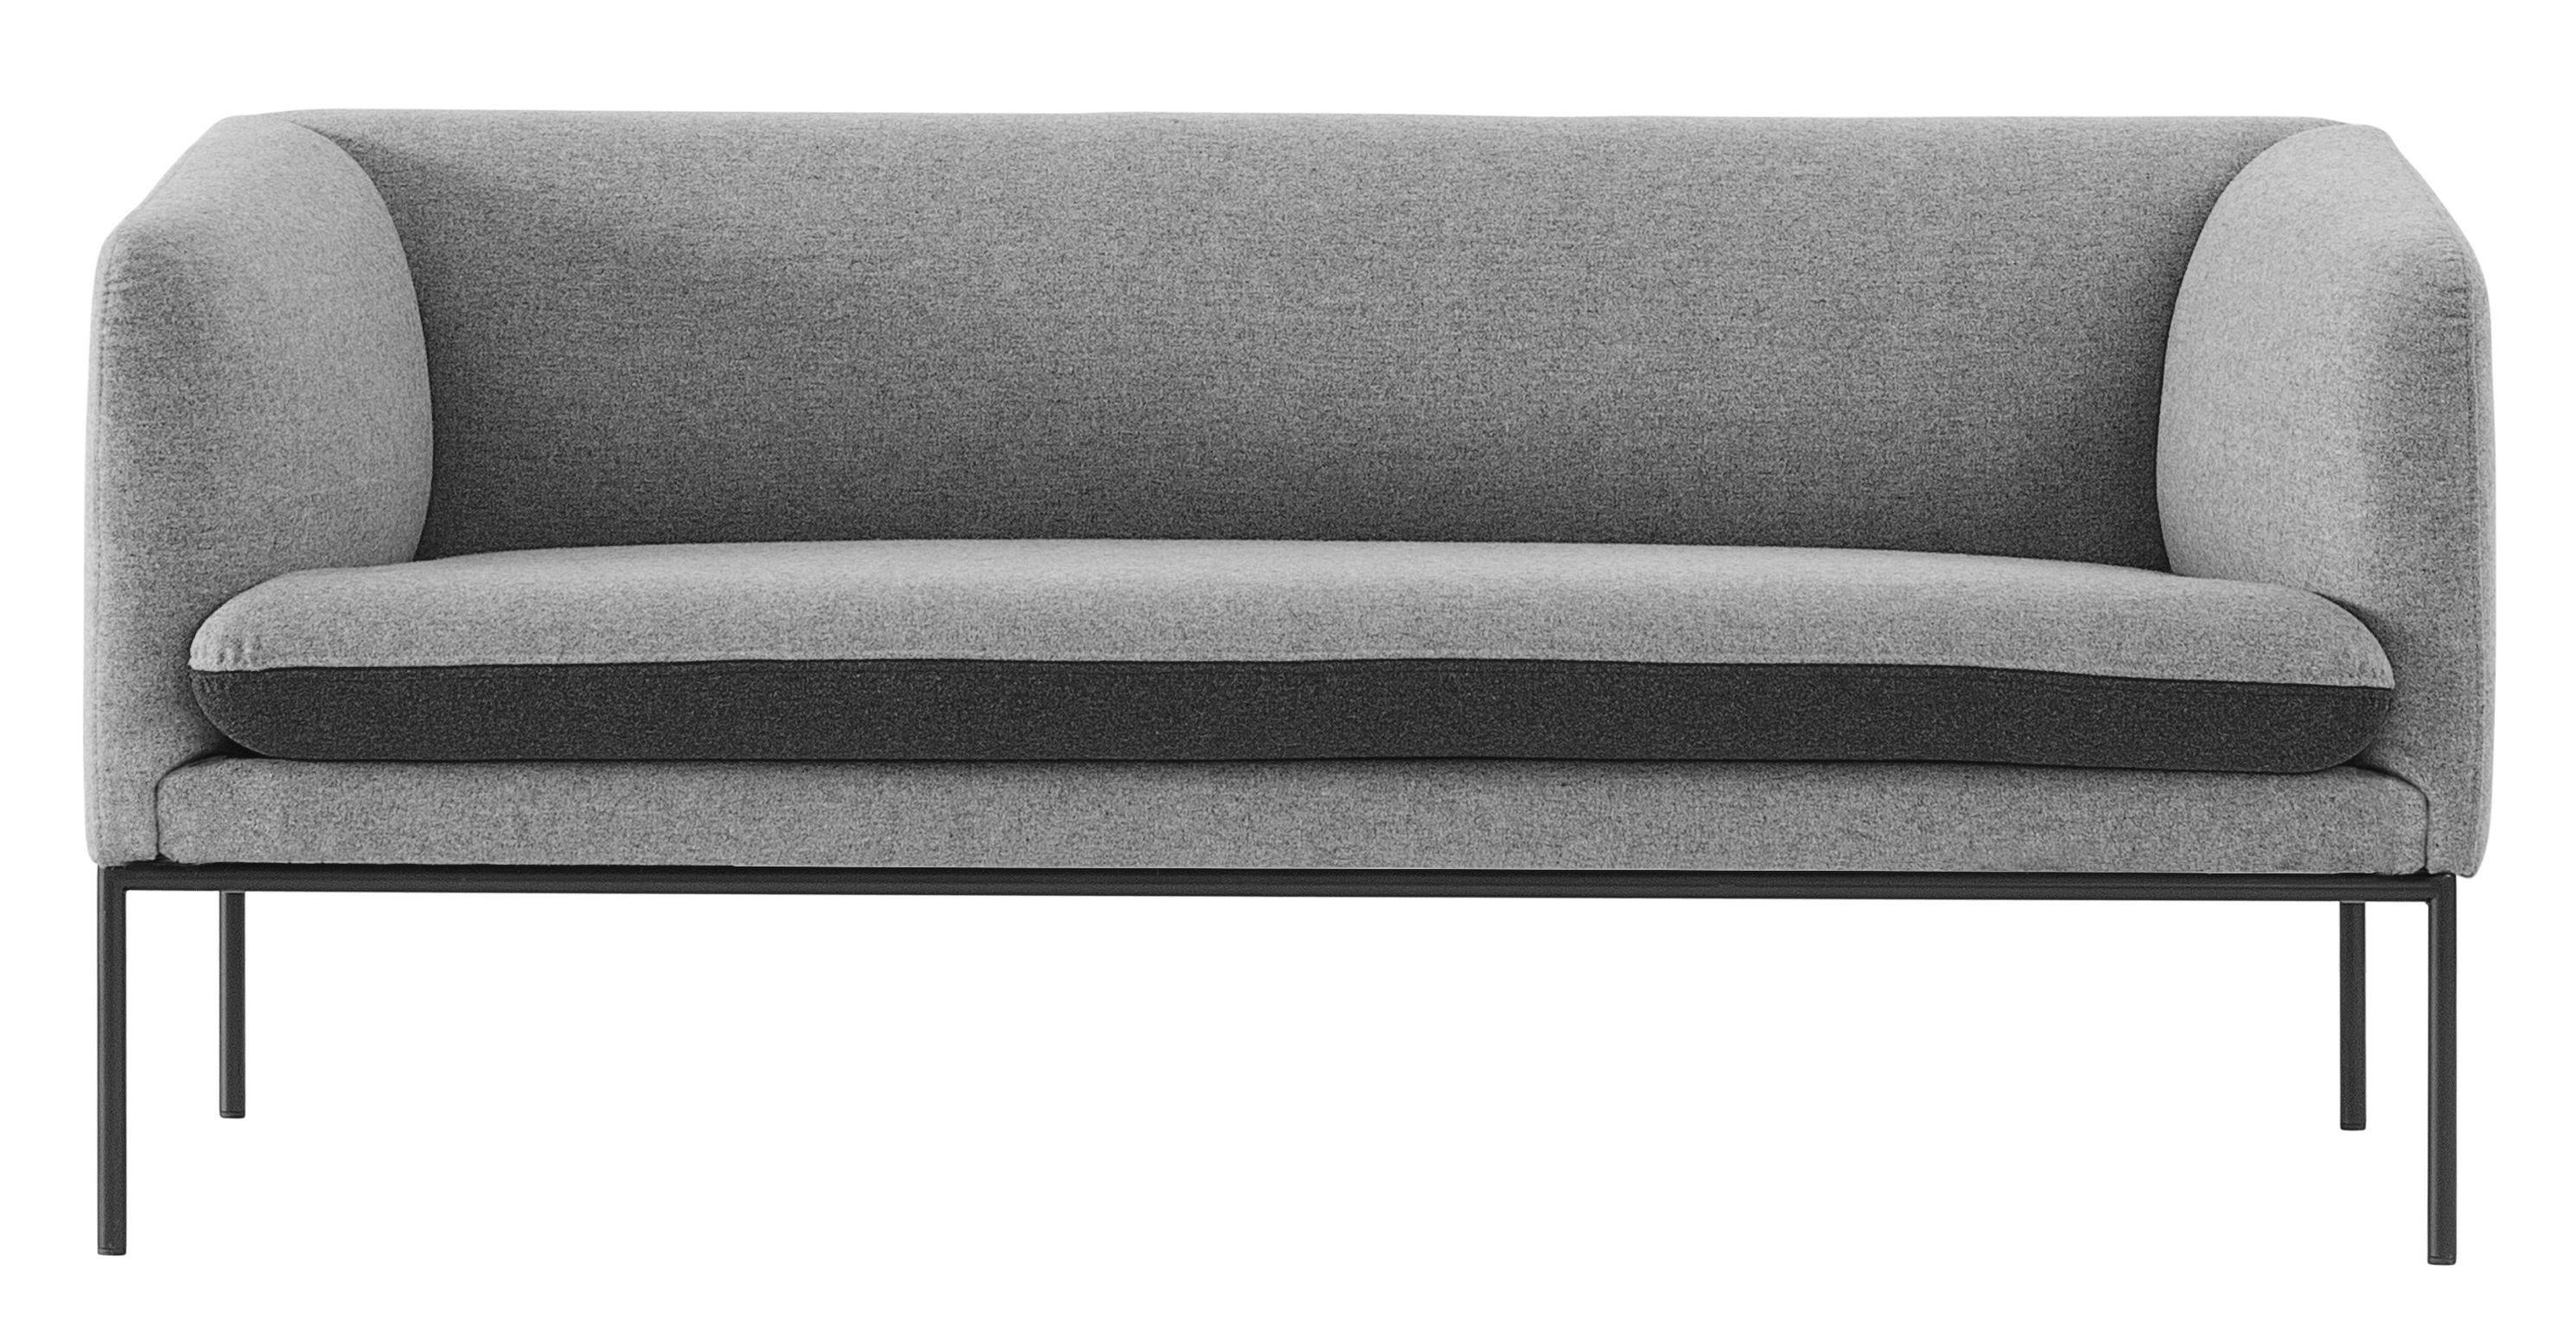 turn l 160 cm 2 sitzer ferm living sofa. Black Bedroom Furniture Sets. Home Design Ideas